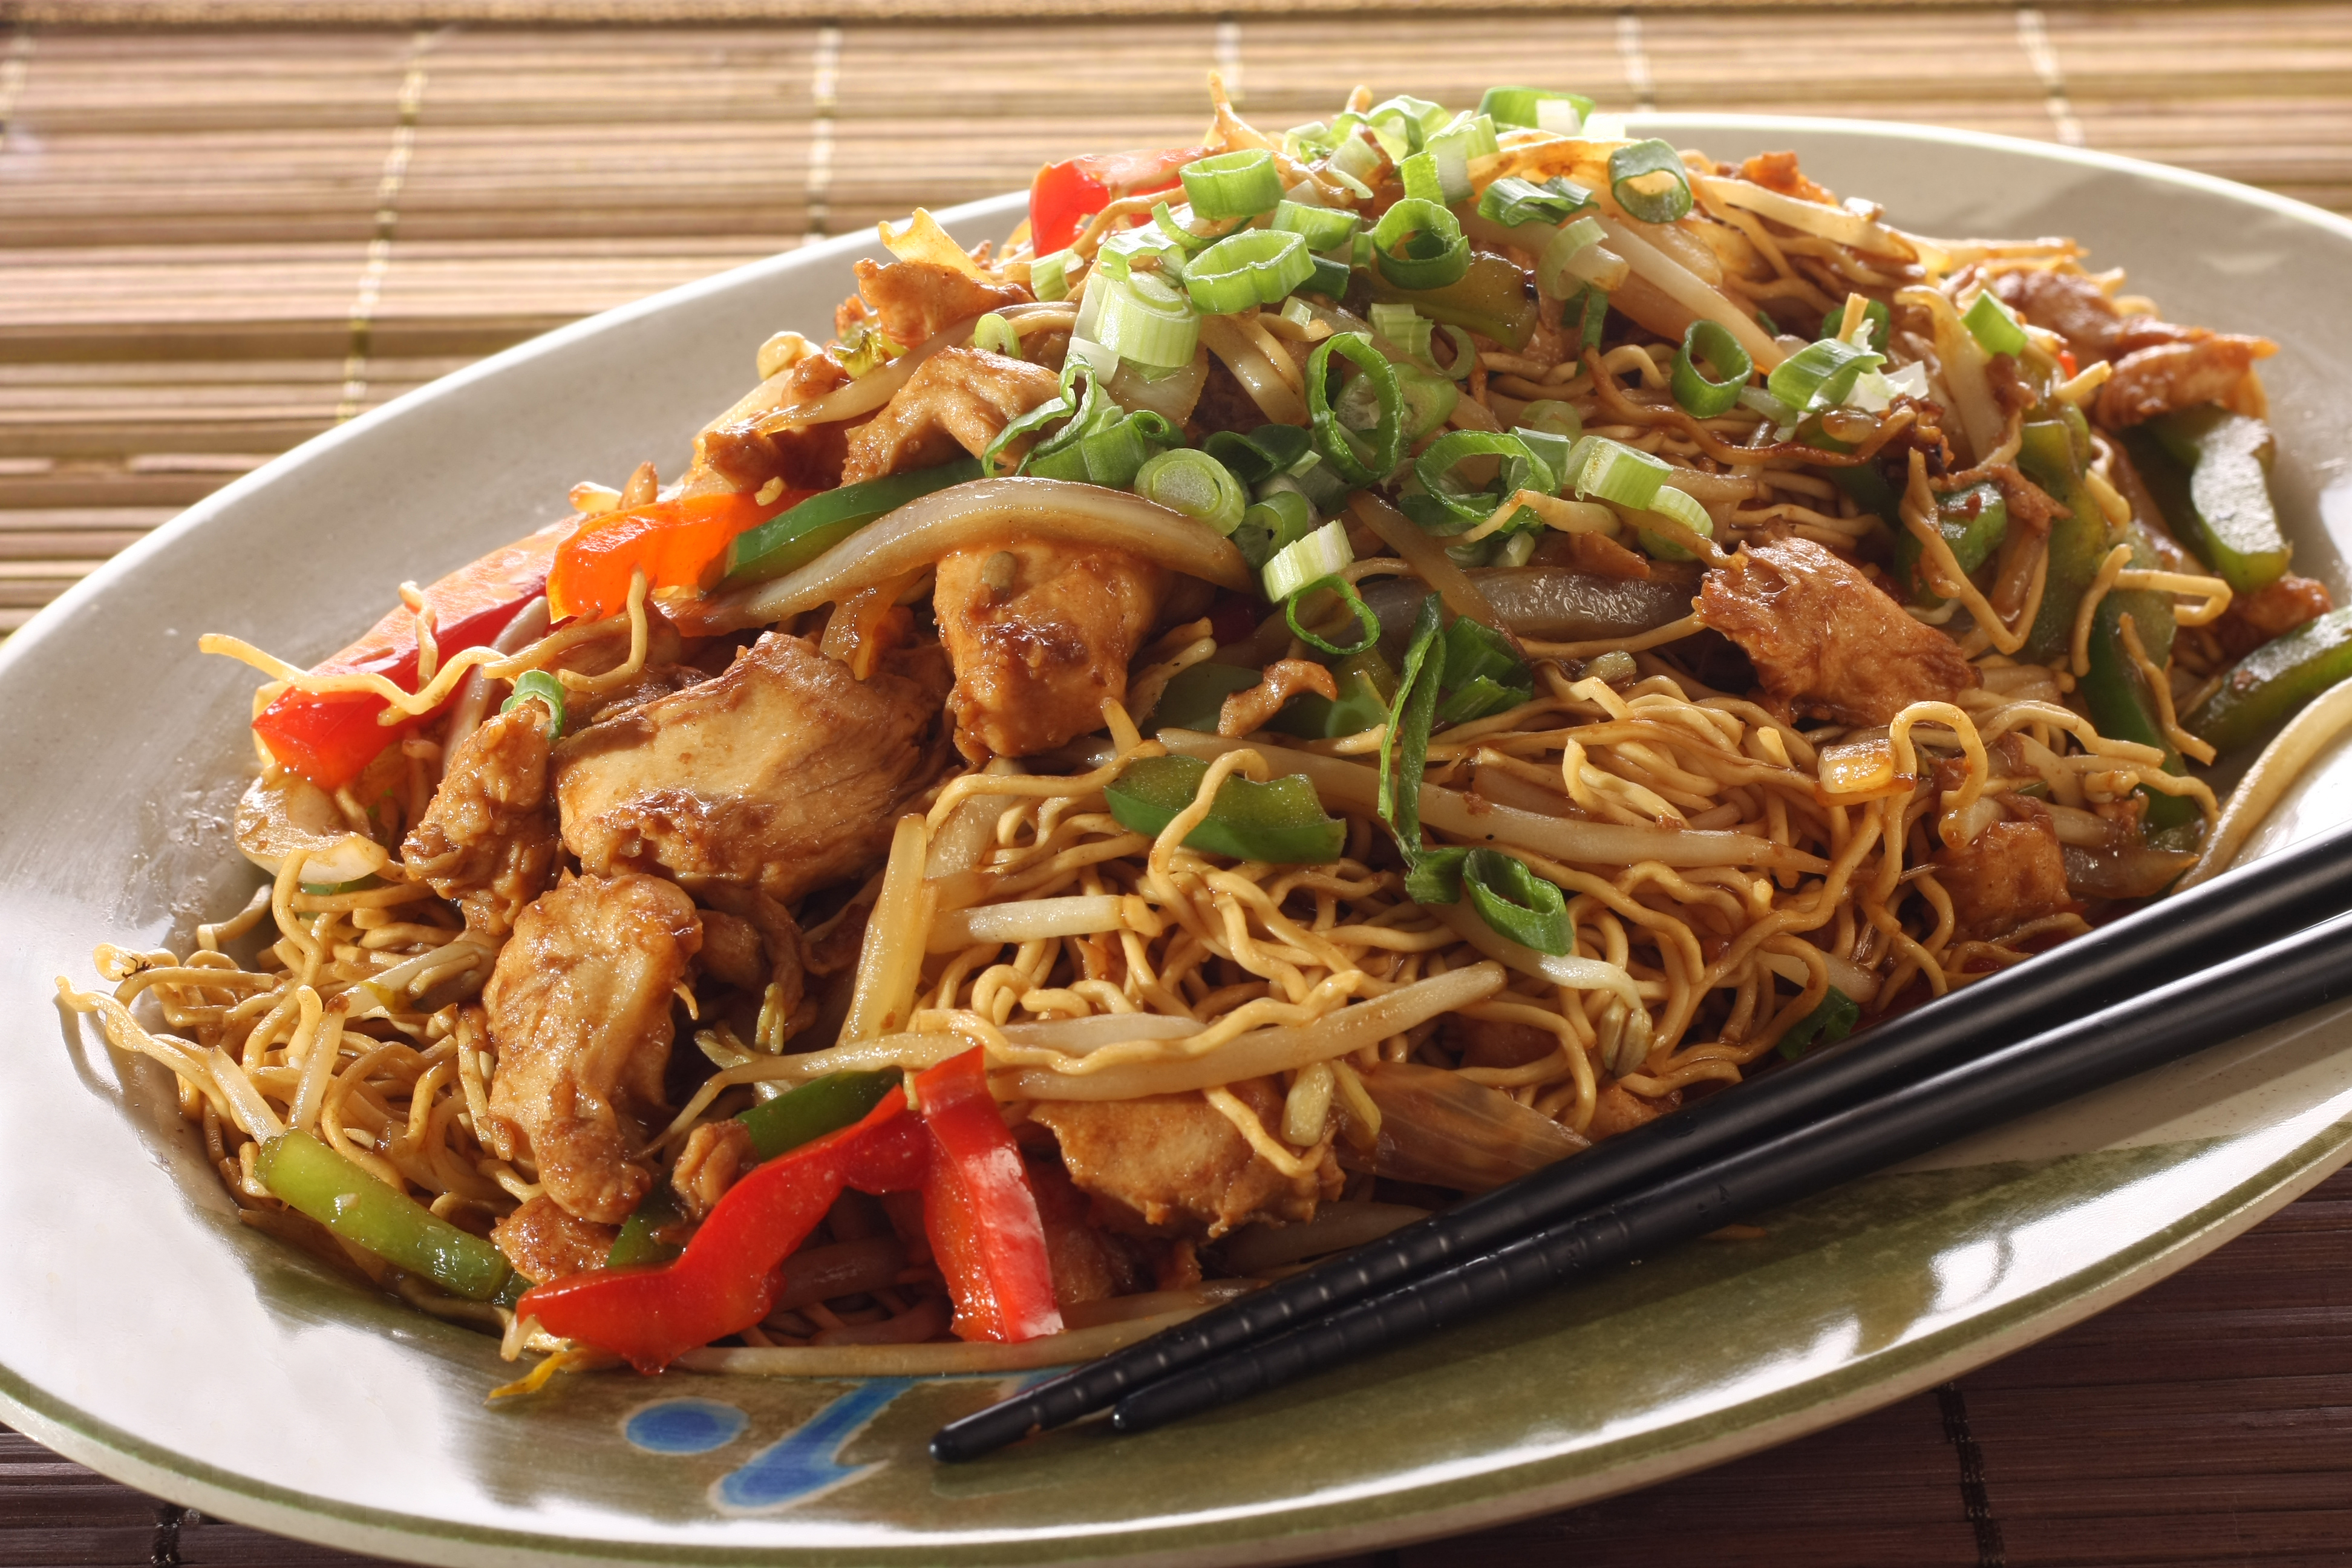 Chow mein on a gray plate with a set of black chopsticks